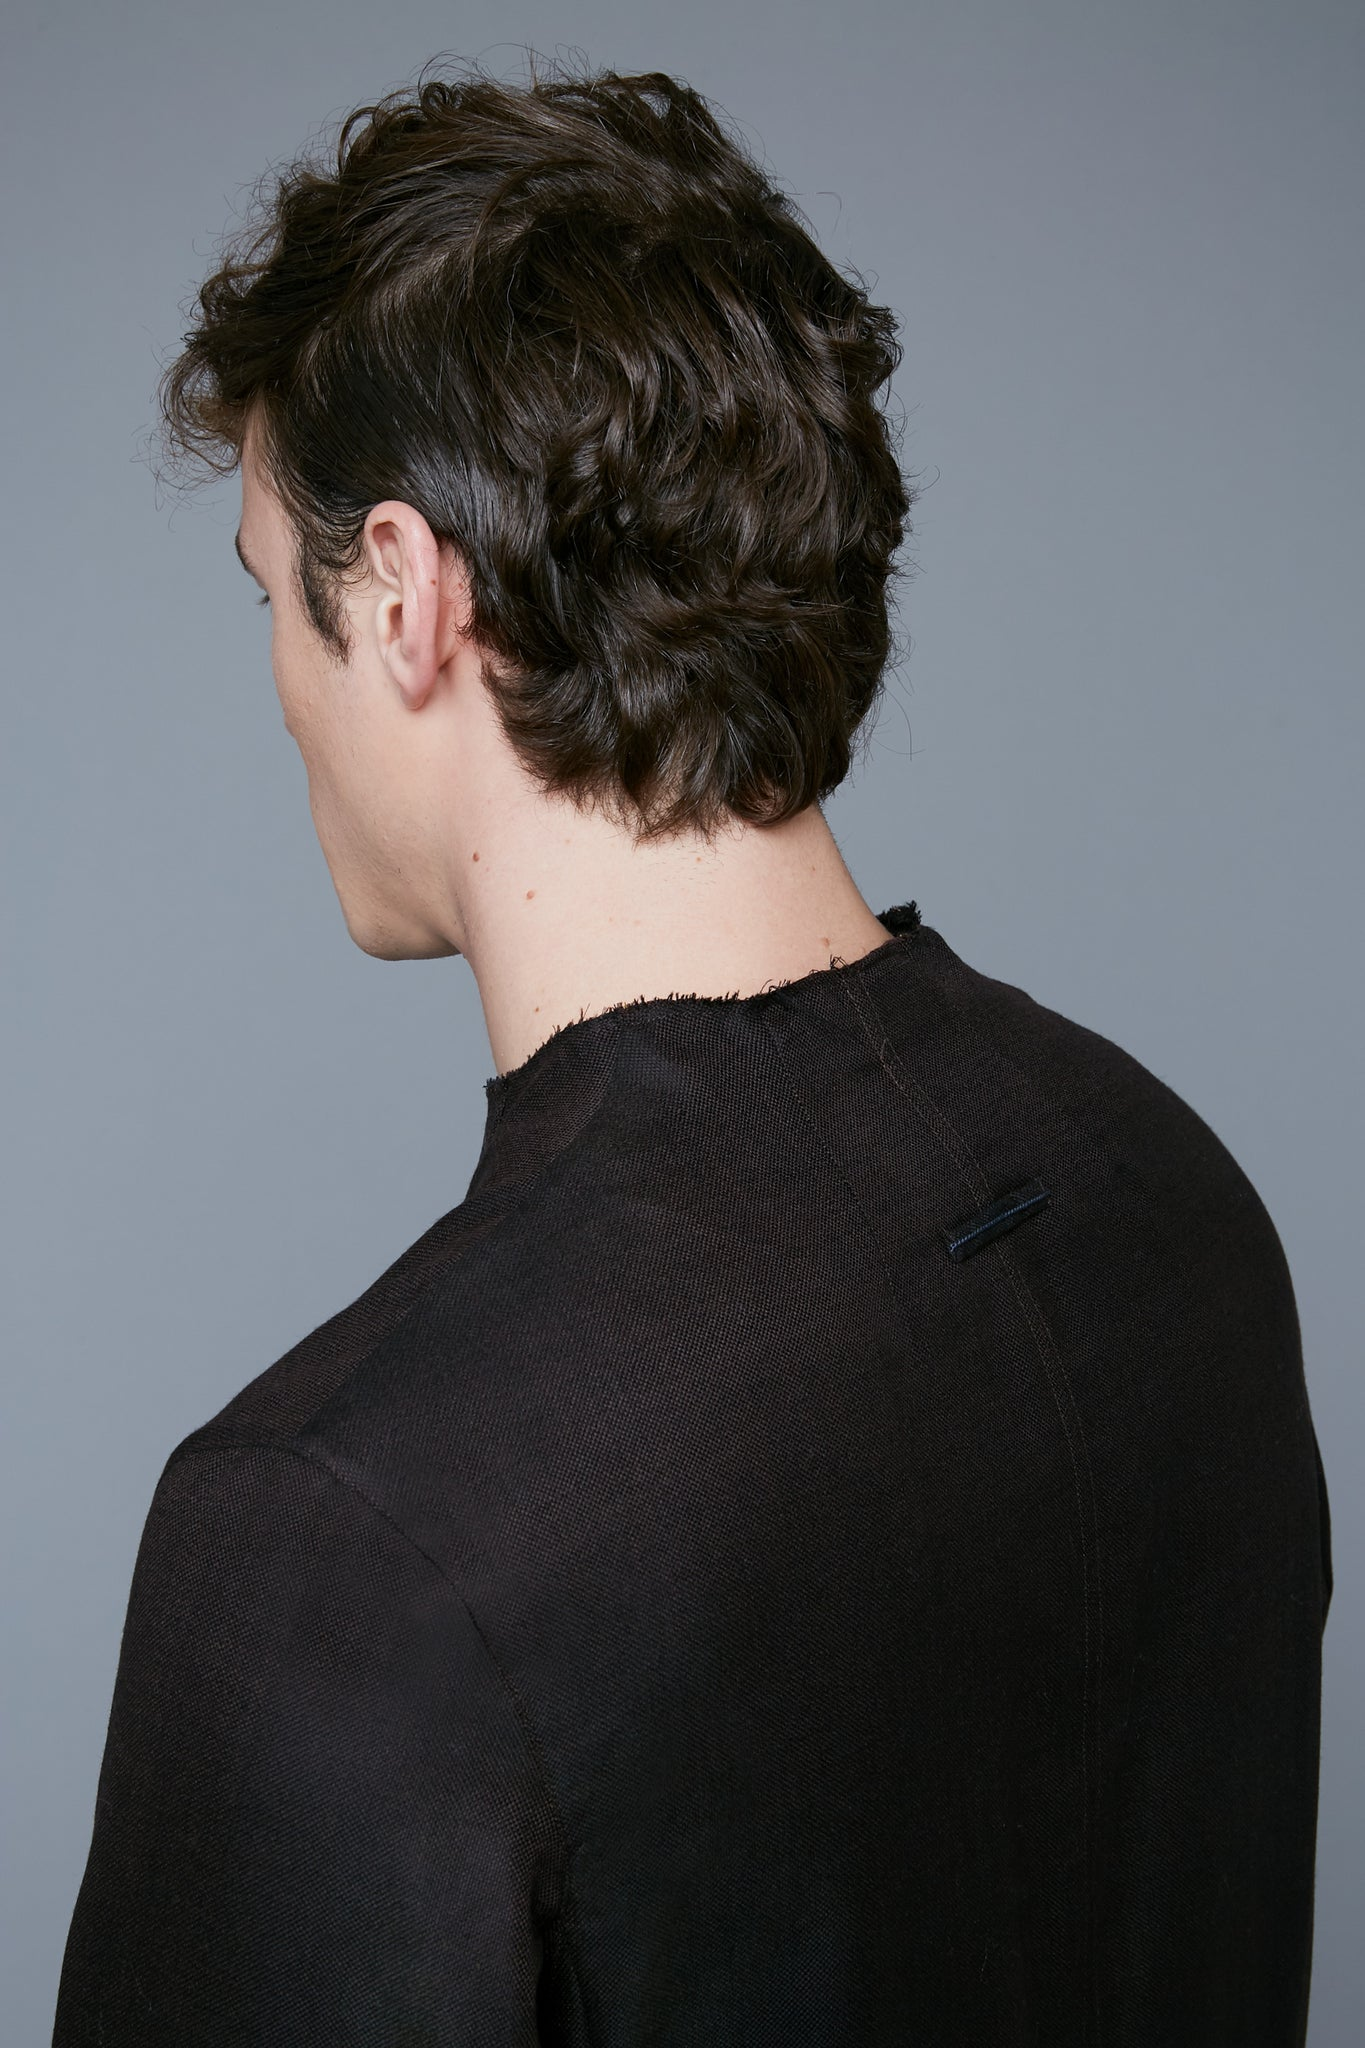 Detail View: Model Hans Weiner wearing Royal Pullover